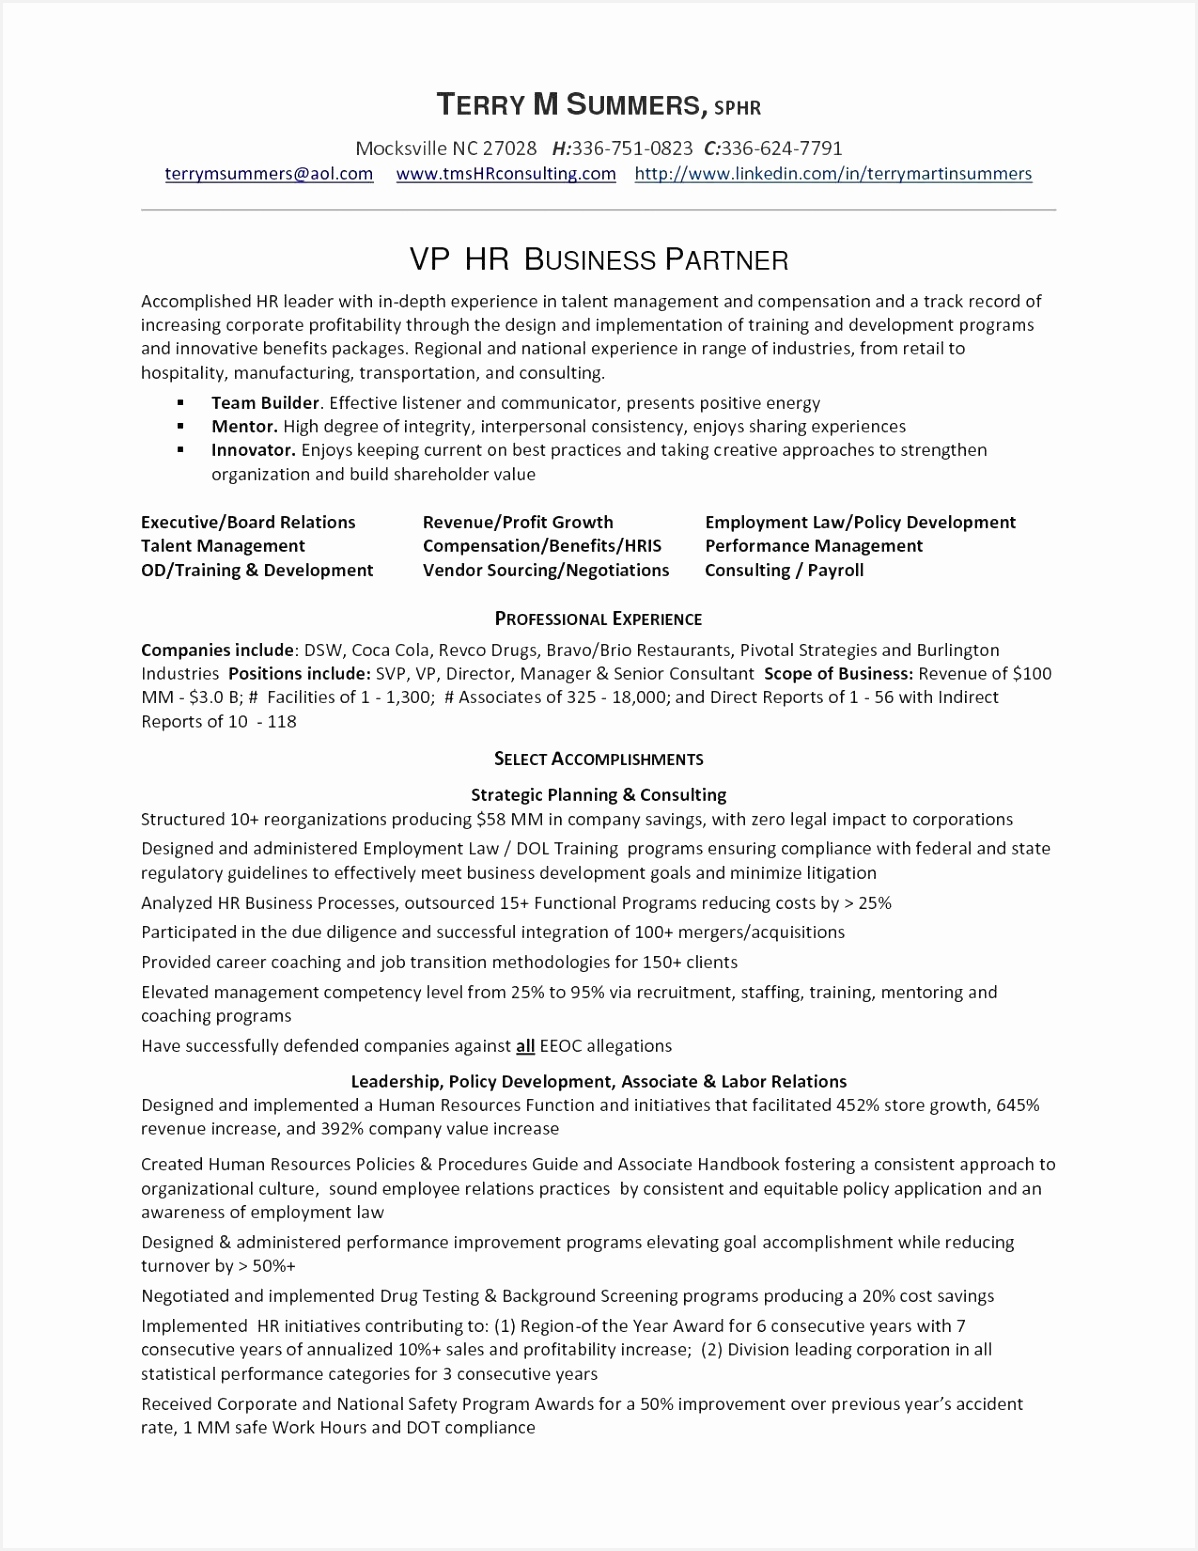 Sample Resume Business Development Specialist New Sample Resume For Business Development Specialist Valid Simple 155111985zvcq